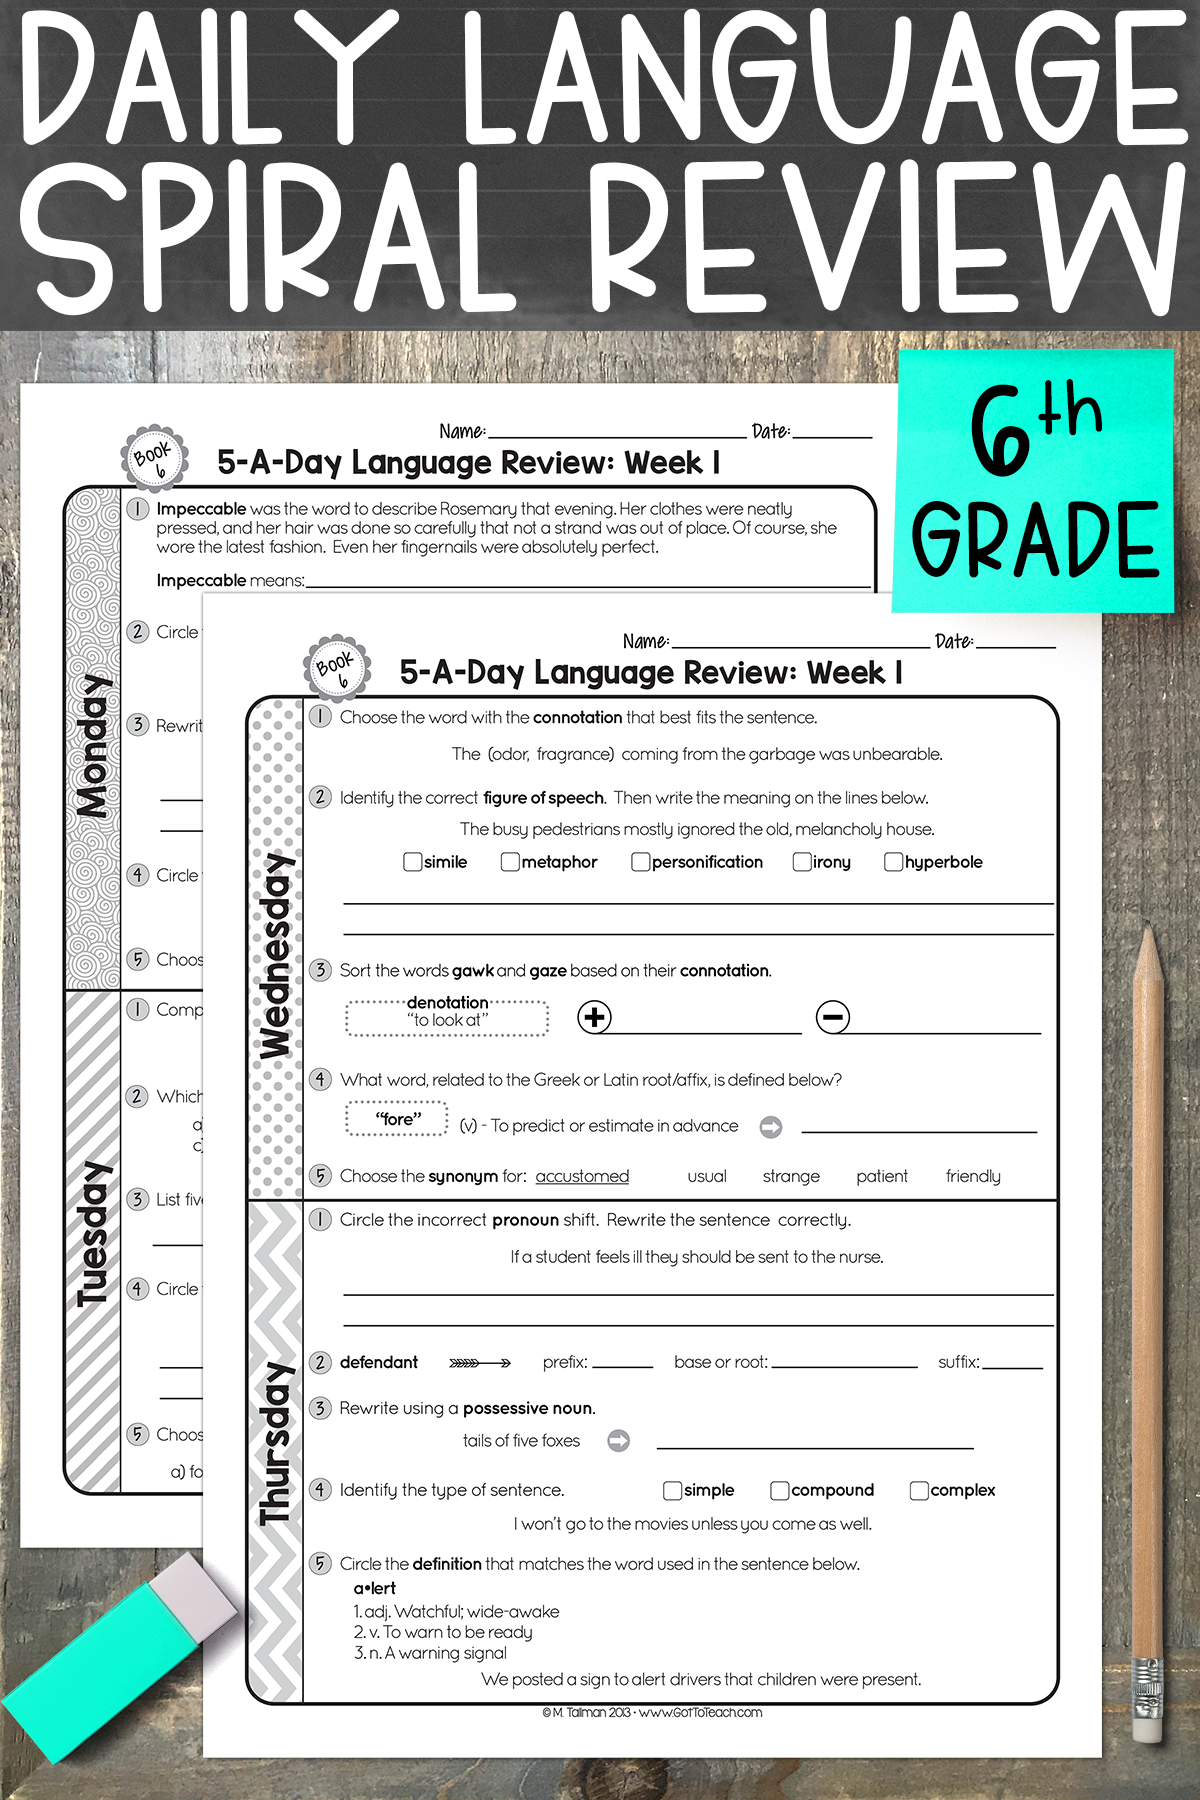 medium resolution of FREE 6th Grade Daily Language Spiral Review • Teacher Thrive   Teaching 6th  grade